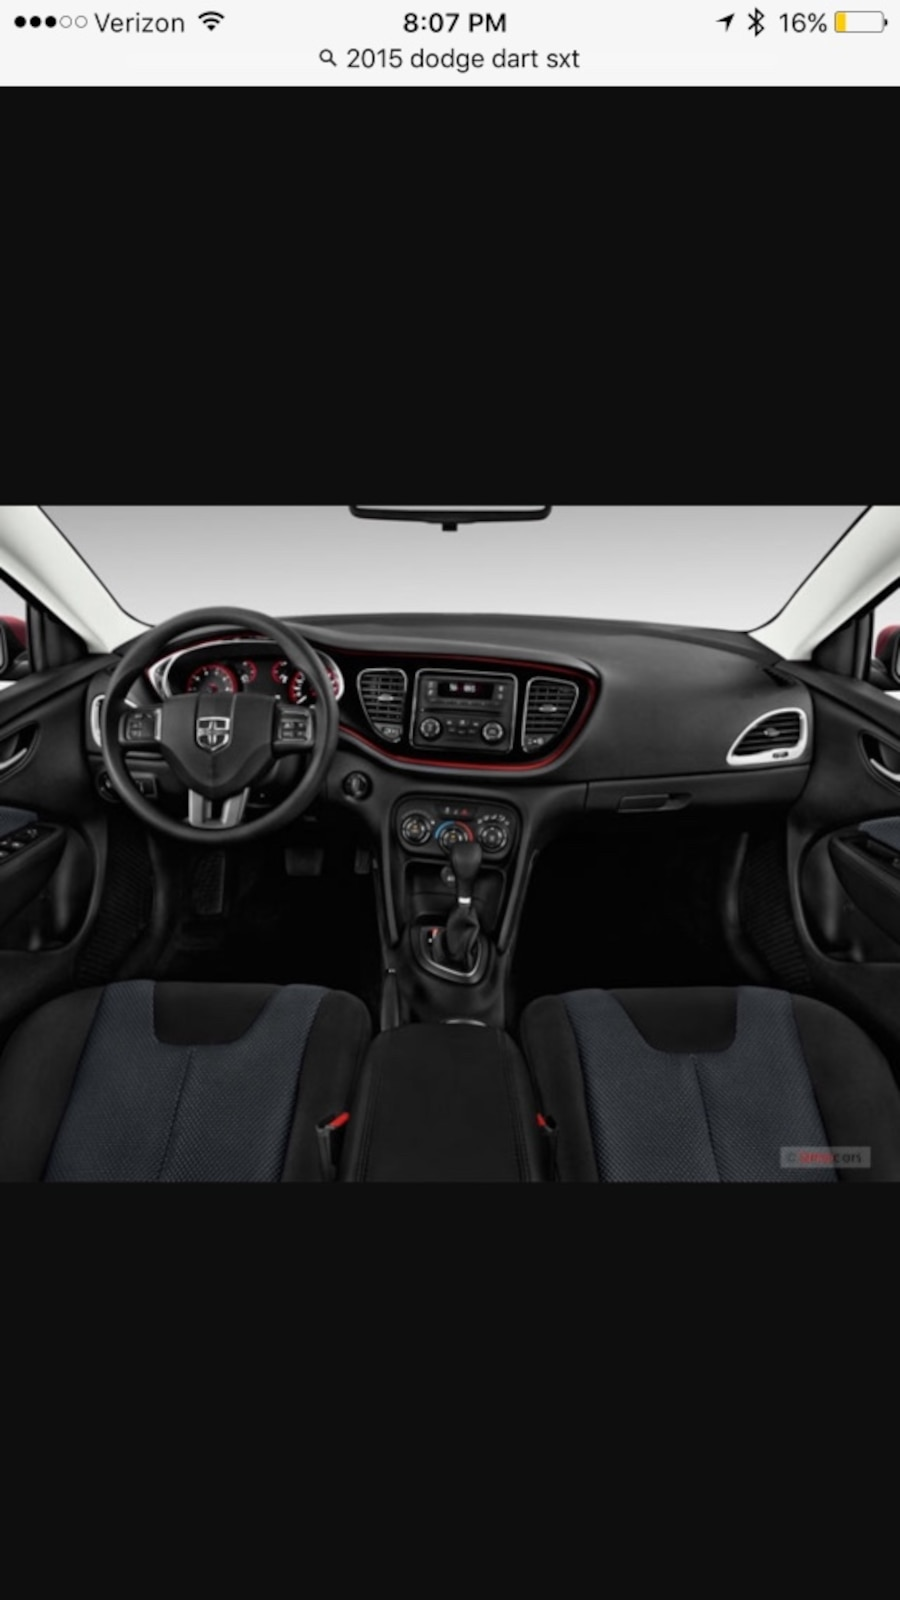 used dodge dart sxt 2015 in enterprise. Black Bedroom Furniture Sets. Home Design Ideas